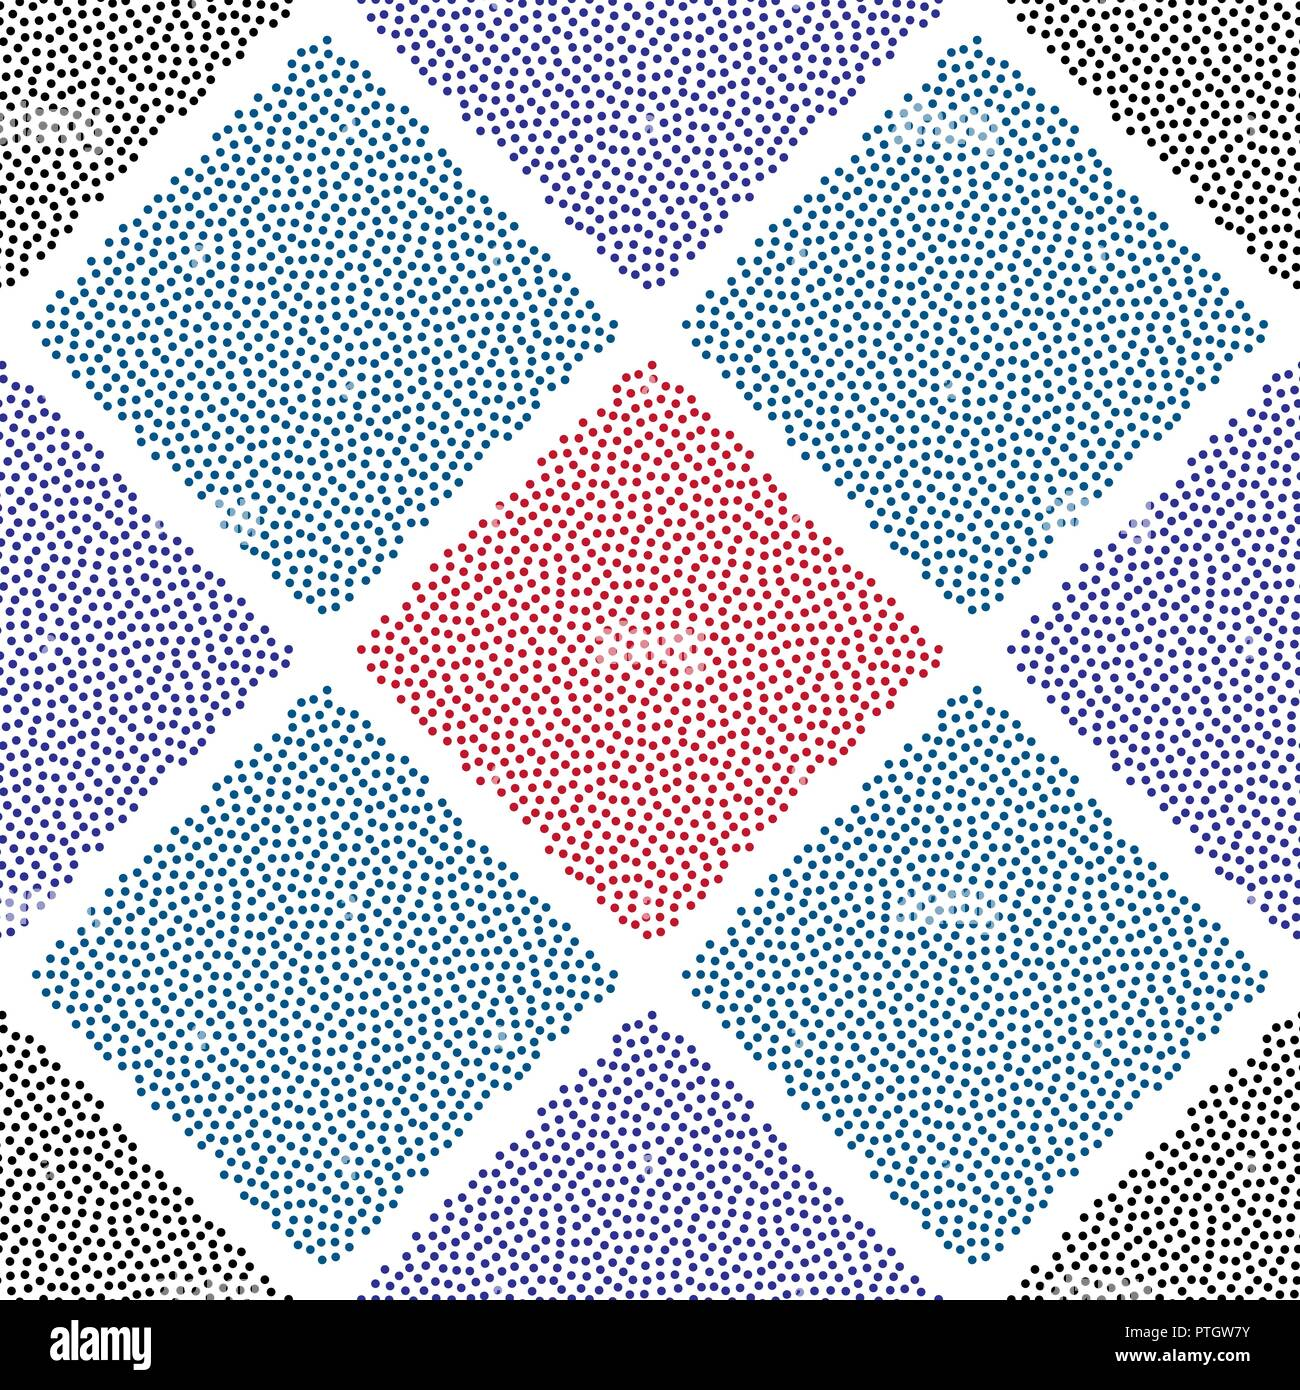 Dotted Squares Vector Seamless Pattern. Abstract Dots Cell